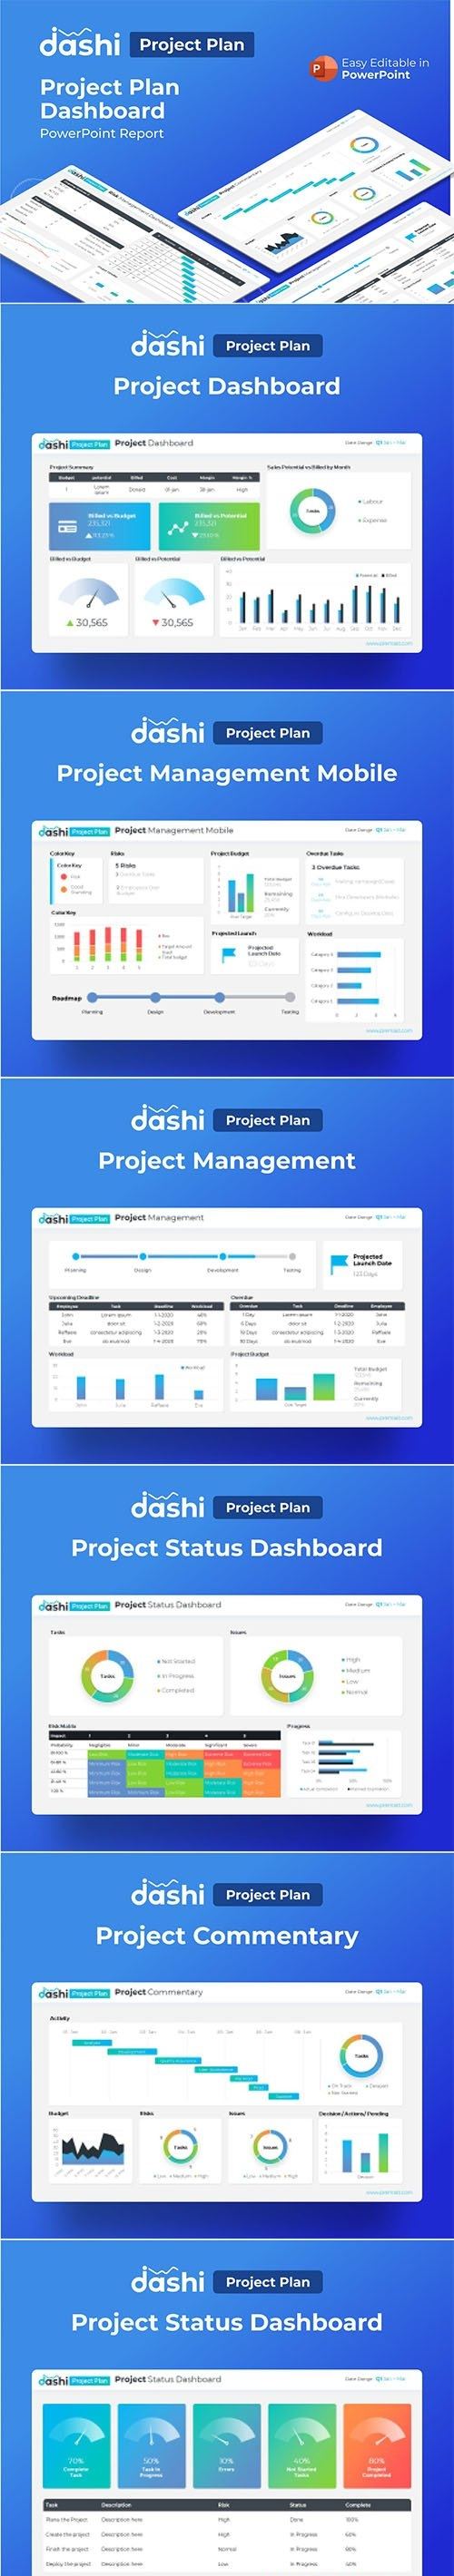 Dashi Project Plan Dashboard PowerPoint